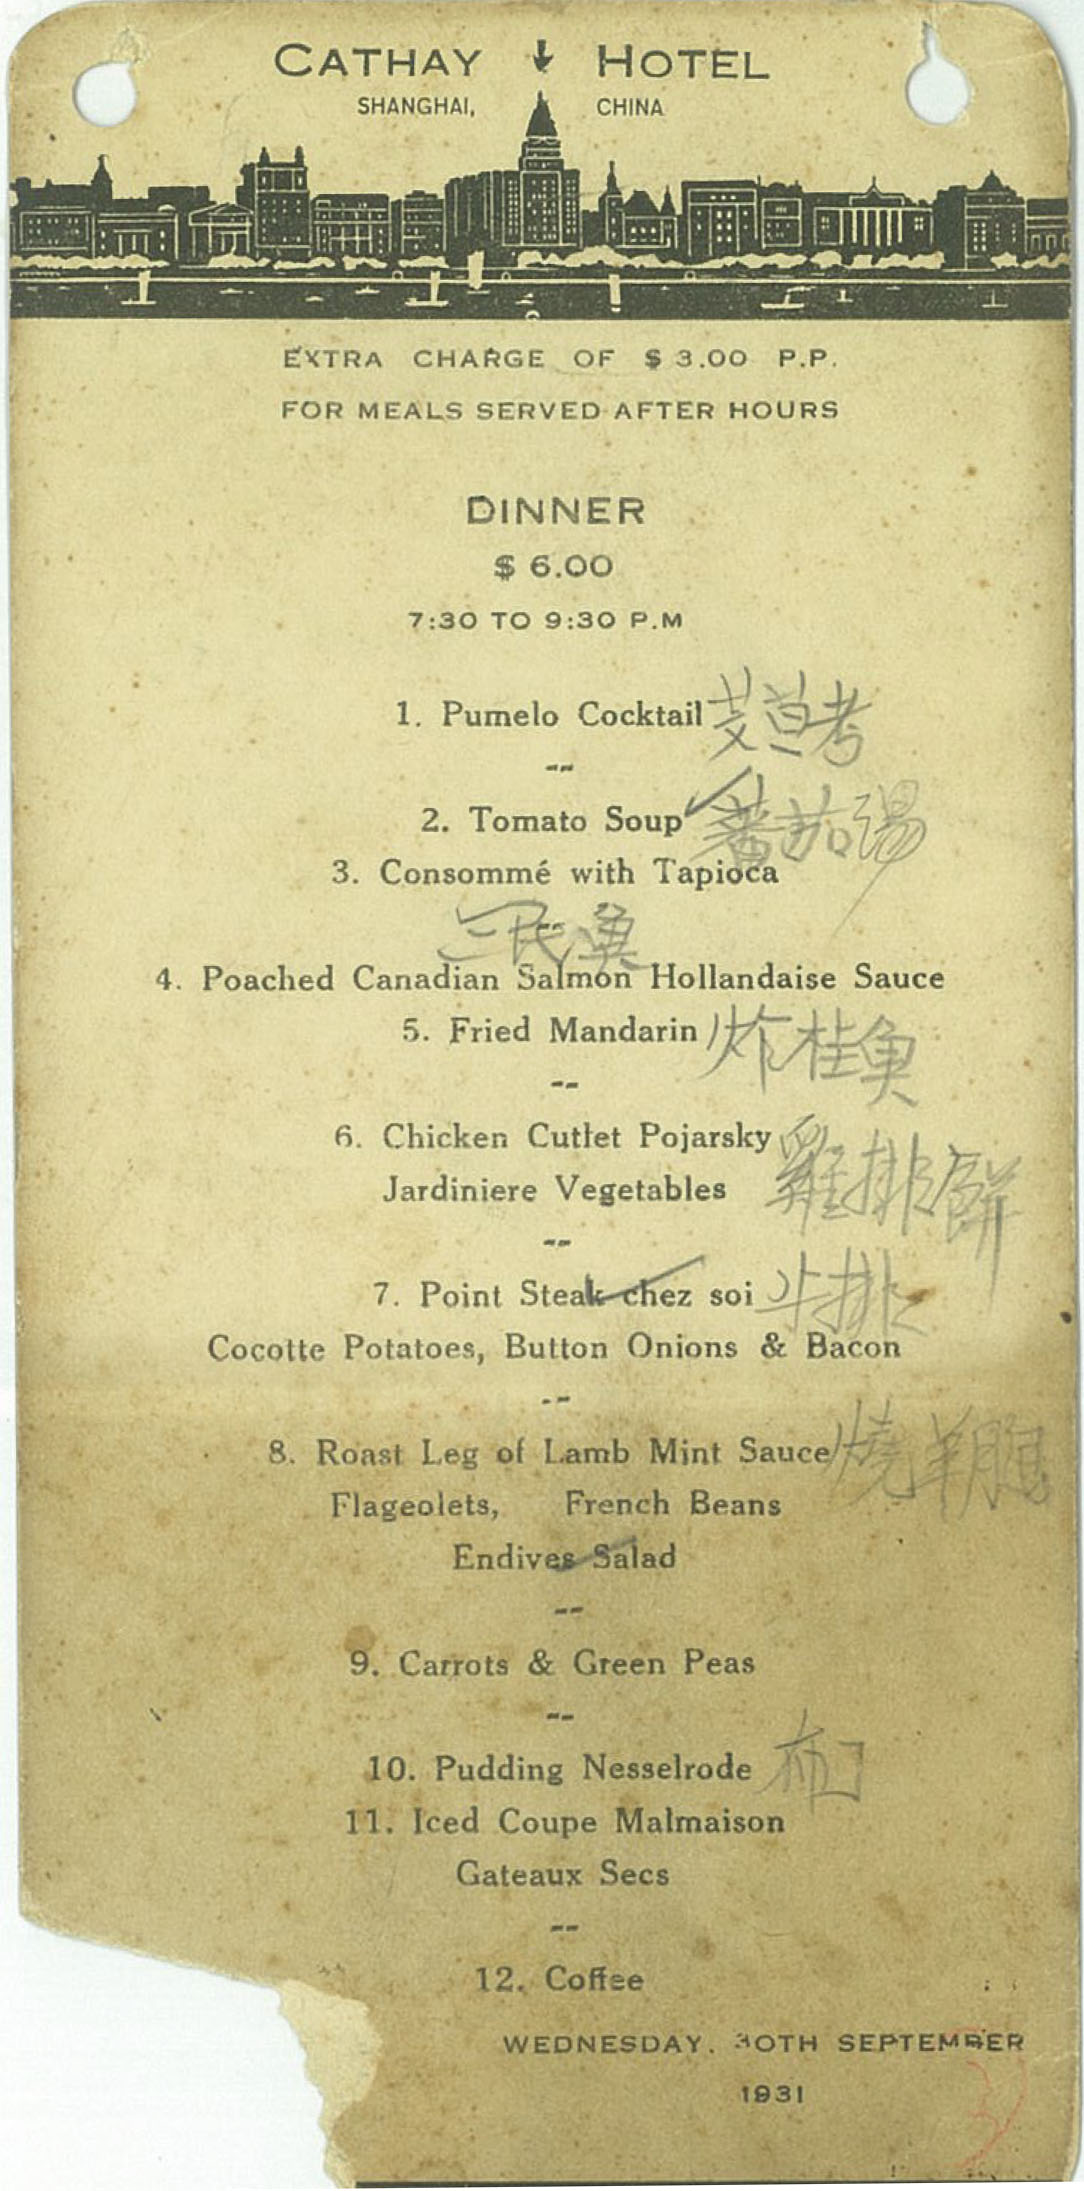 Deco Dining: Cathay's Heritage Menus